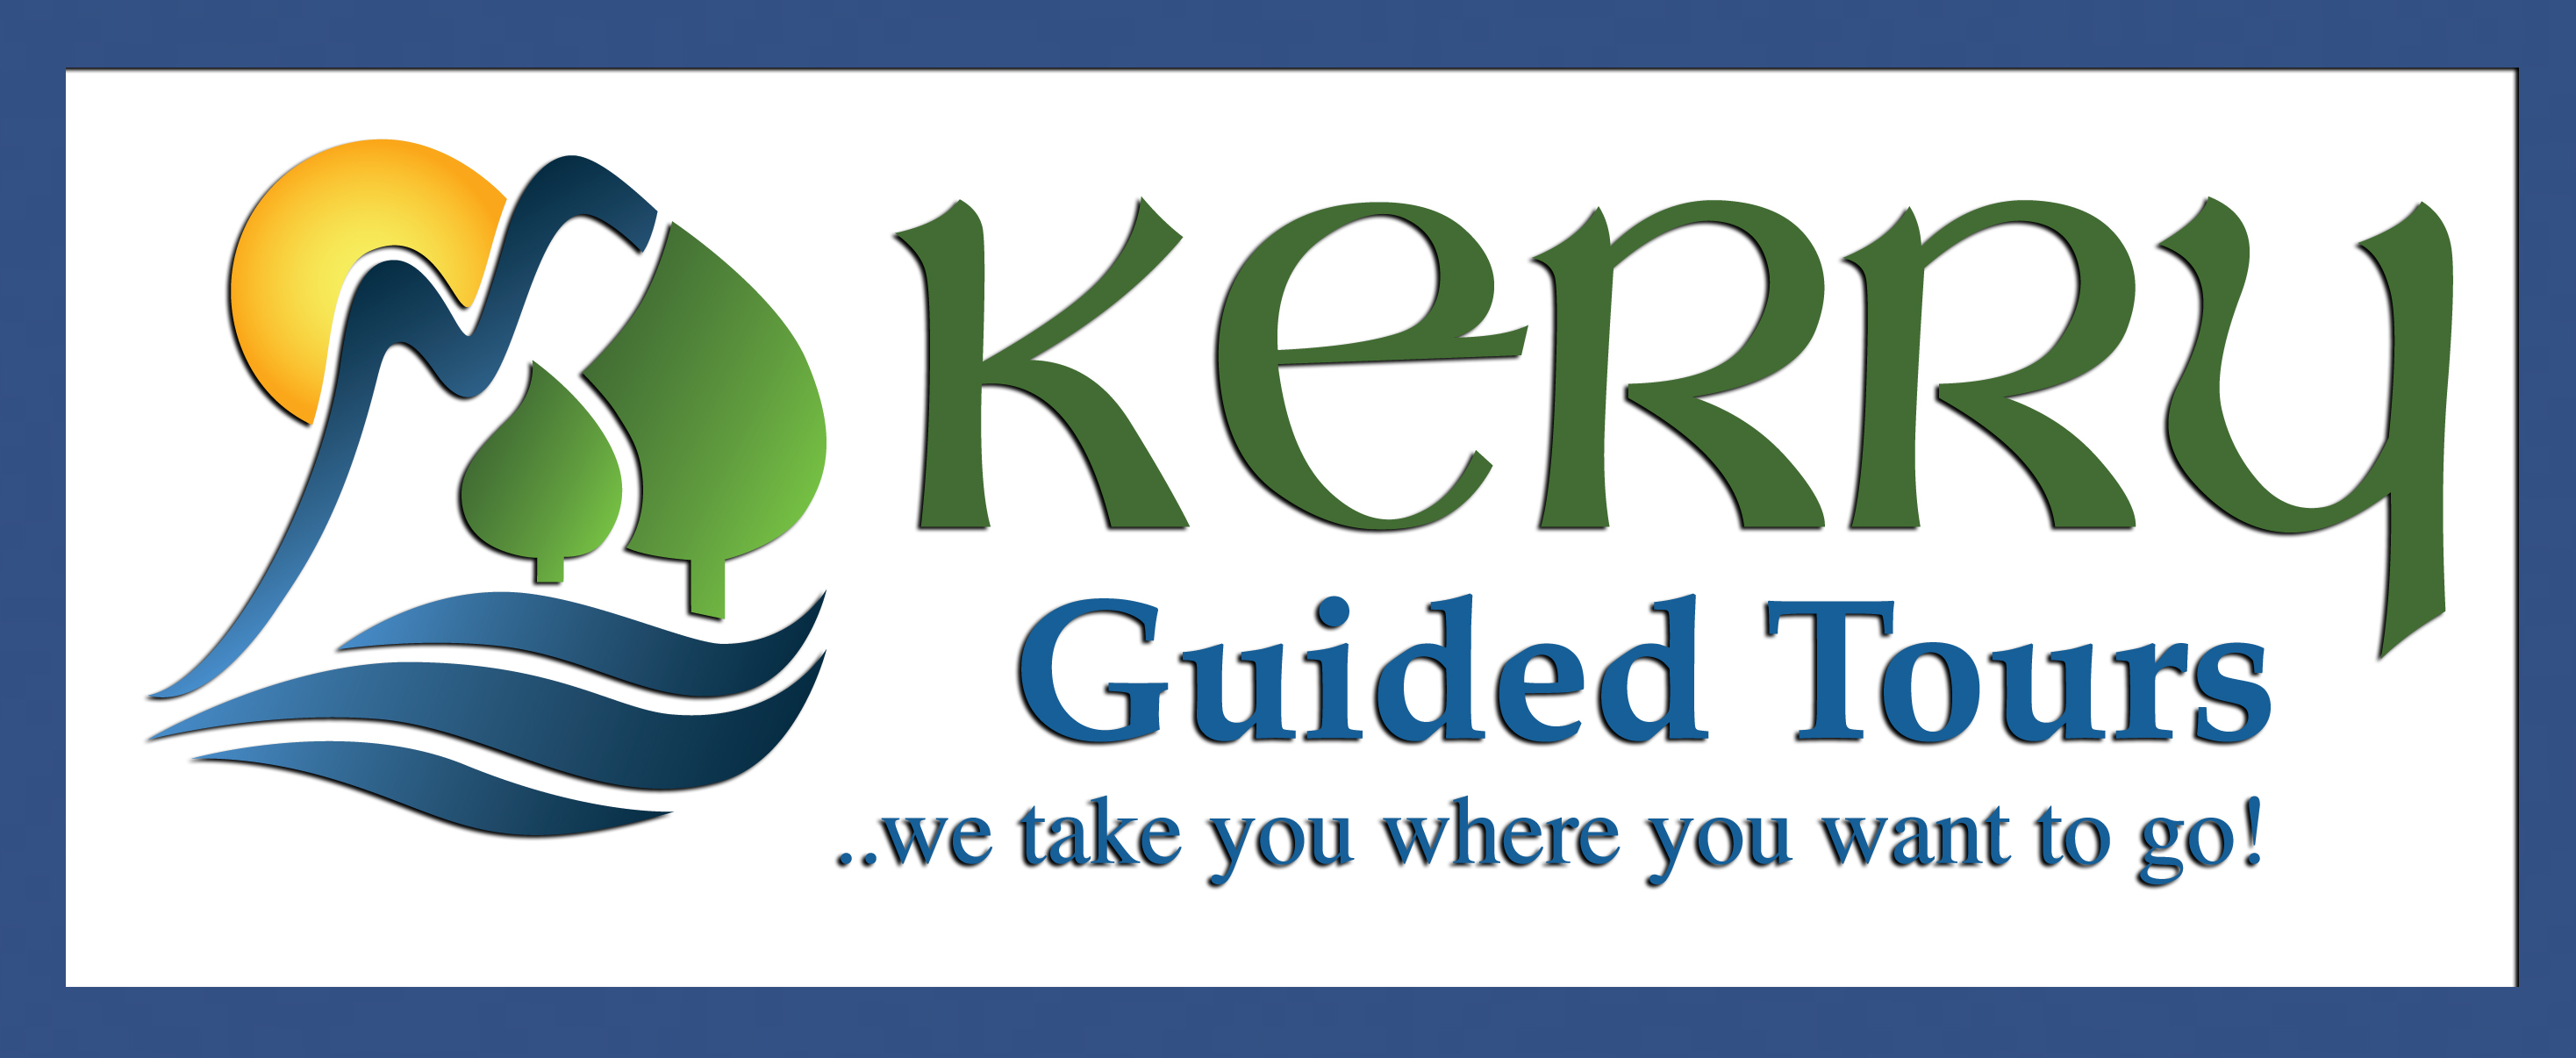 Kerry Guided Tours